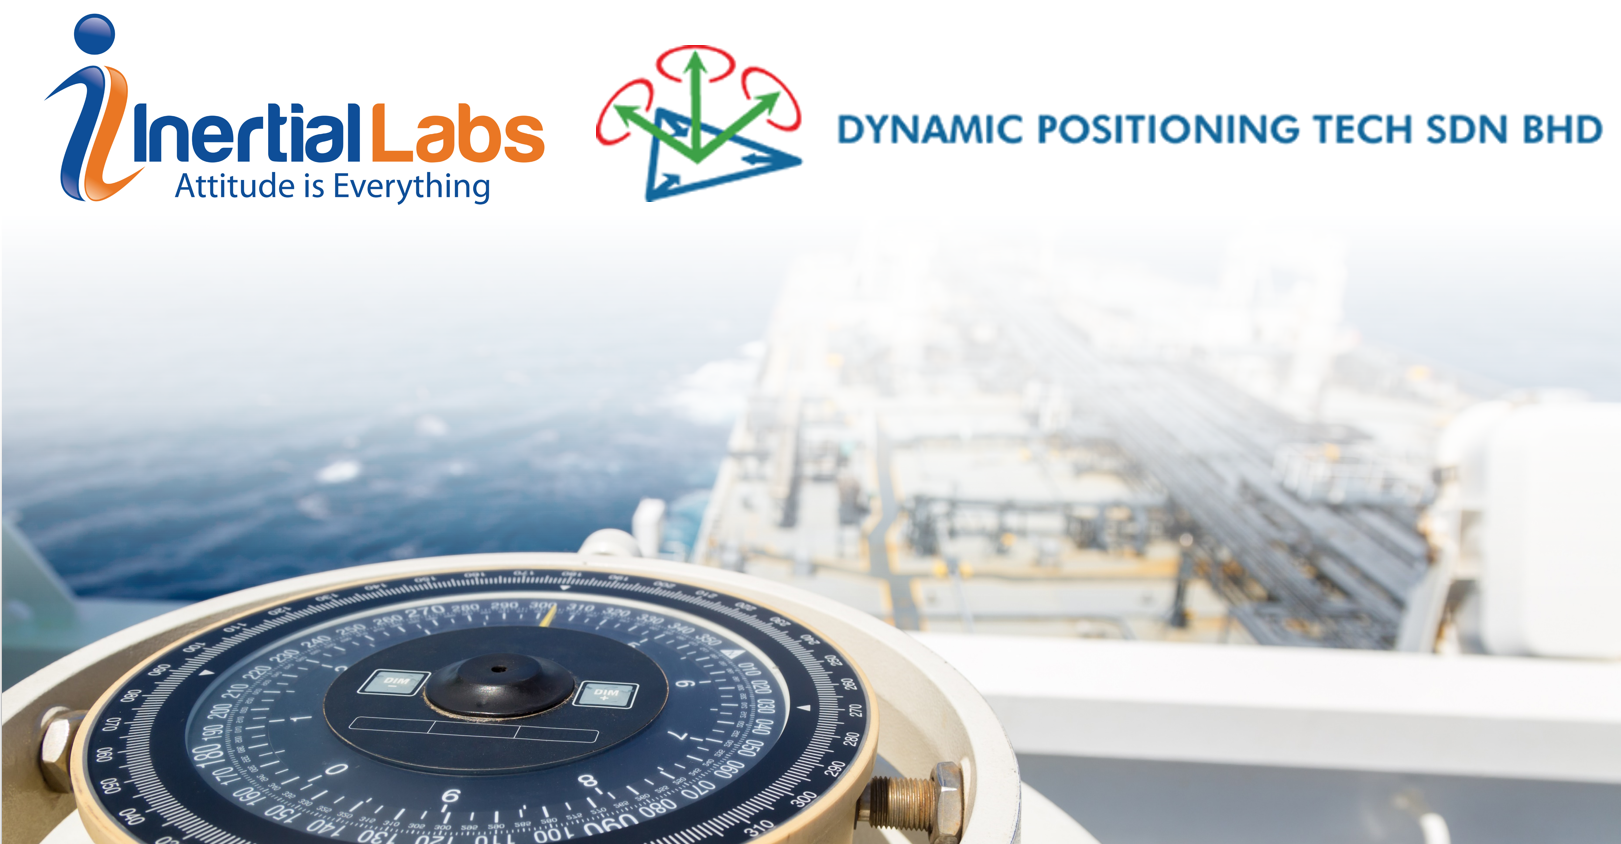 Inertial Labs and Dynamic Positioning Tech. Partnership